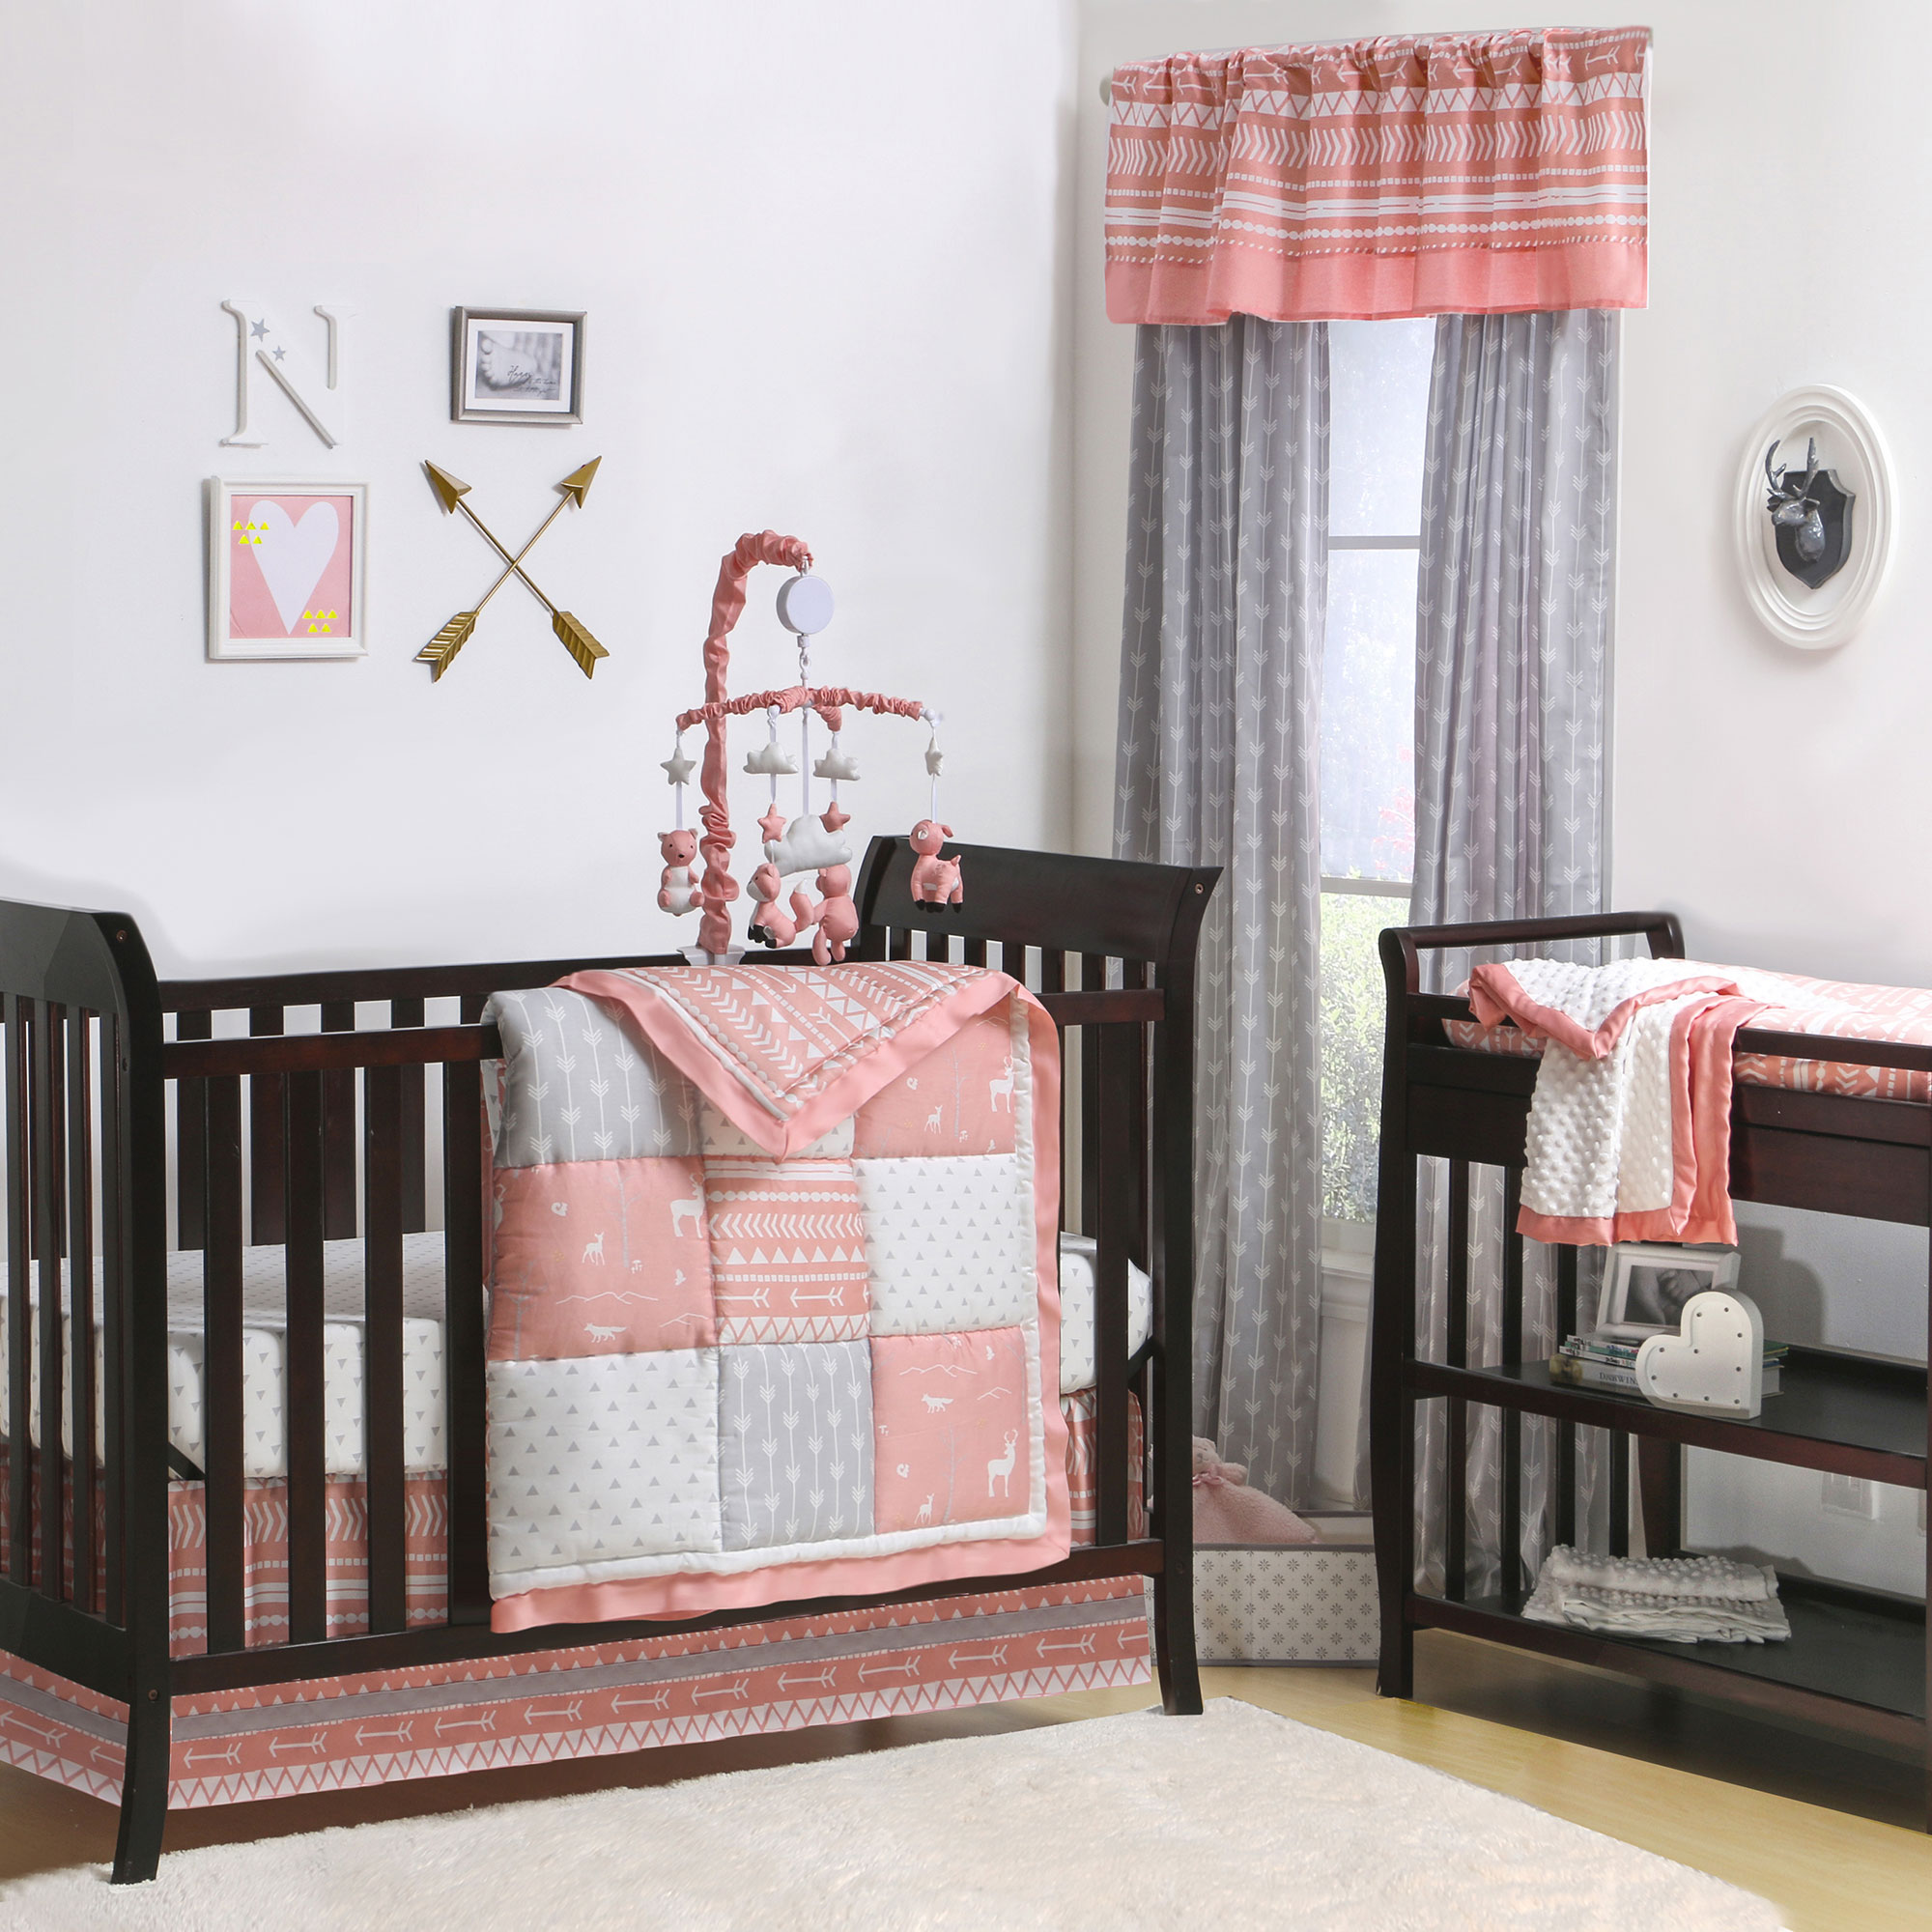 Peanut Shell 4 Piece Baby Crib Bedding Set - Coral Pink W...